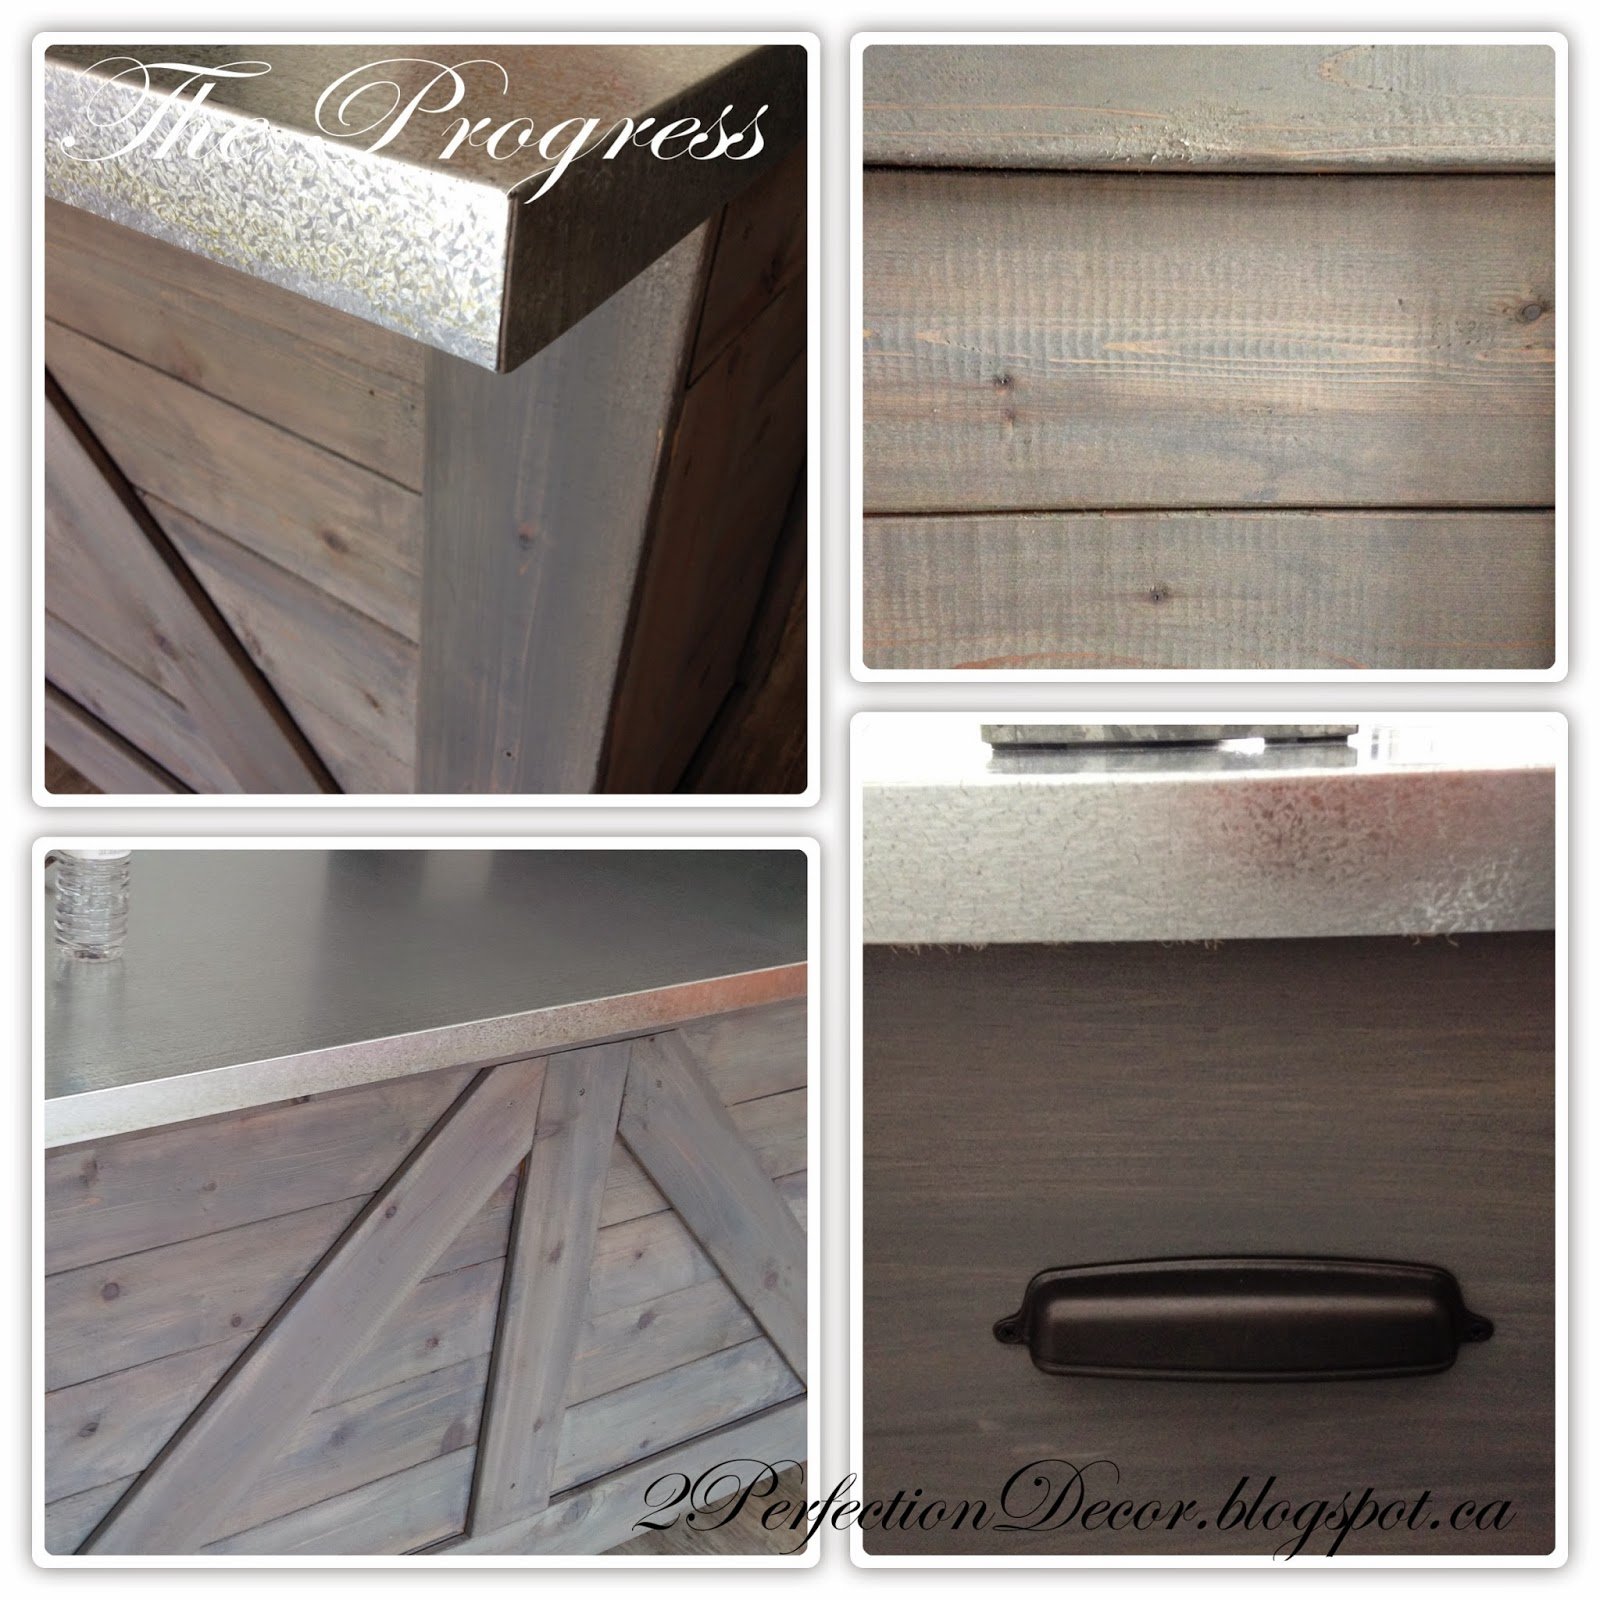 diy rustic bar. DIY Rustic Wooden Bar by 2Perfection Decor Blog featured on Remodelaholic  IKEA Hack with Galvanized Metal Top